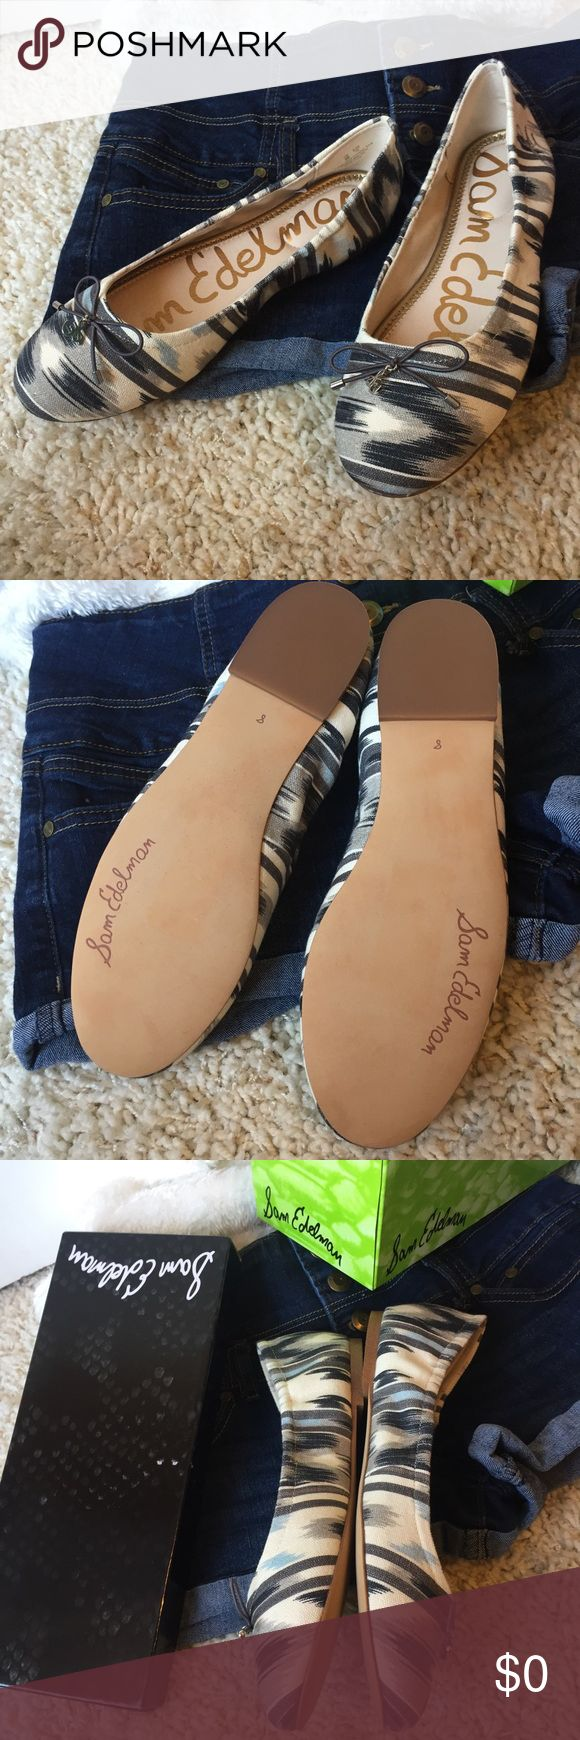 Sam Edelman Felicia Flats NWB Sz 8 Gorgeous, practical and appropriate for any occasion, these flats feature a lovely set of colors: ivory, gray, navy, and sky blue. New with box. Fit true to size. Fabric upper and leather sole. Sam Edelman Shoes Flats & Loafers